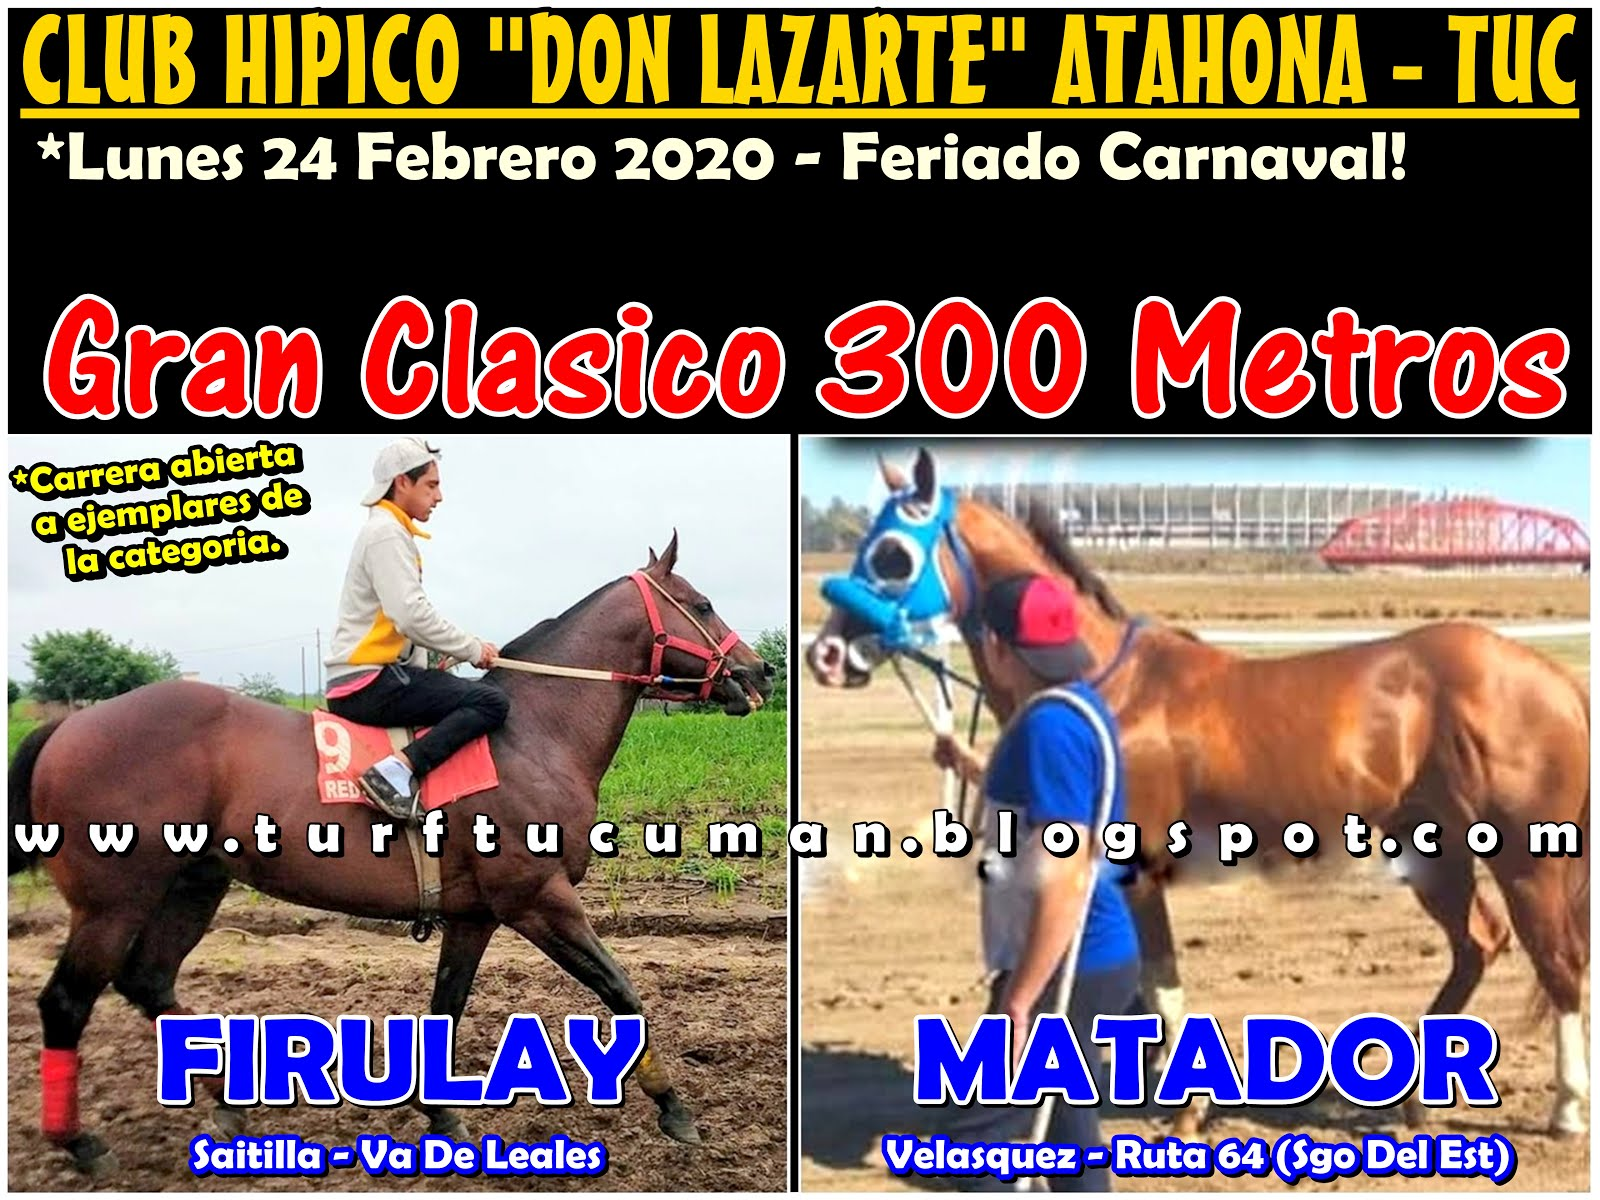 FIRULAY VS MATADOR